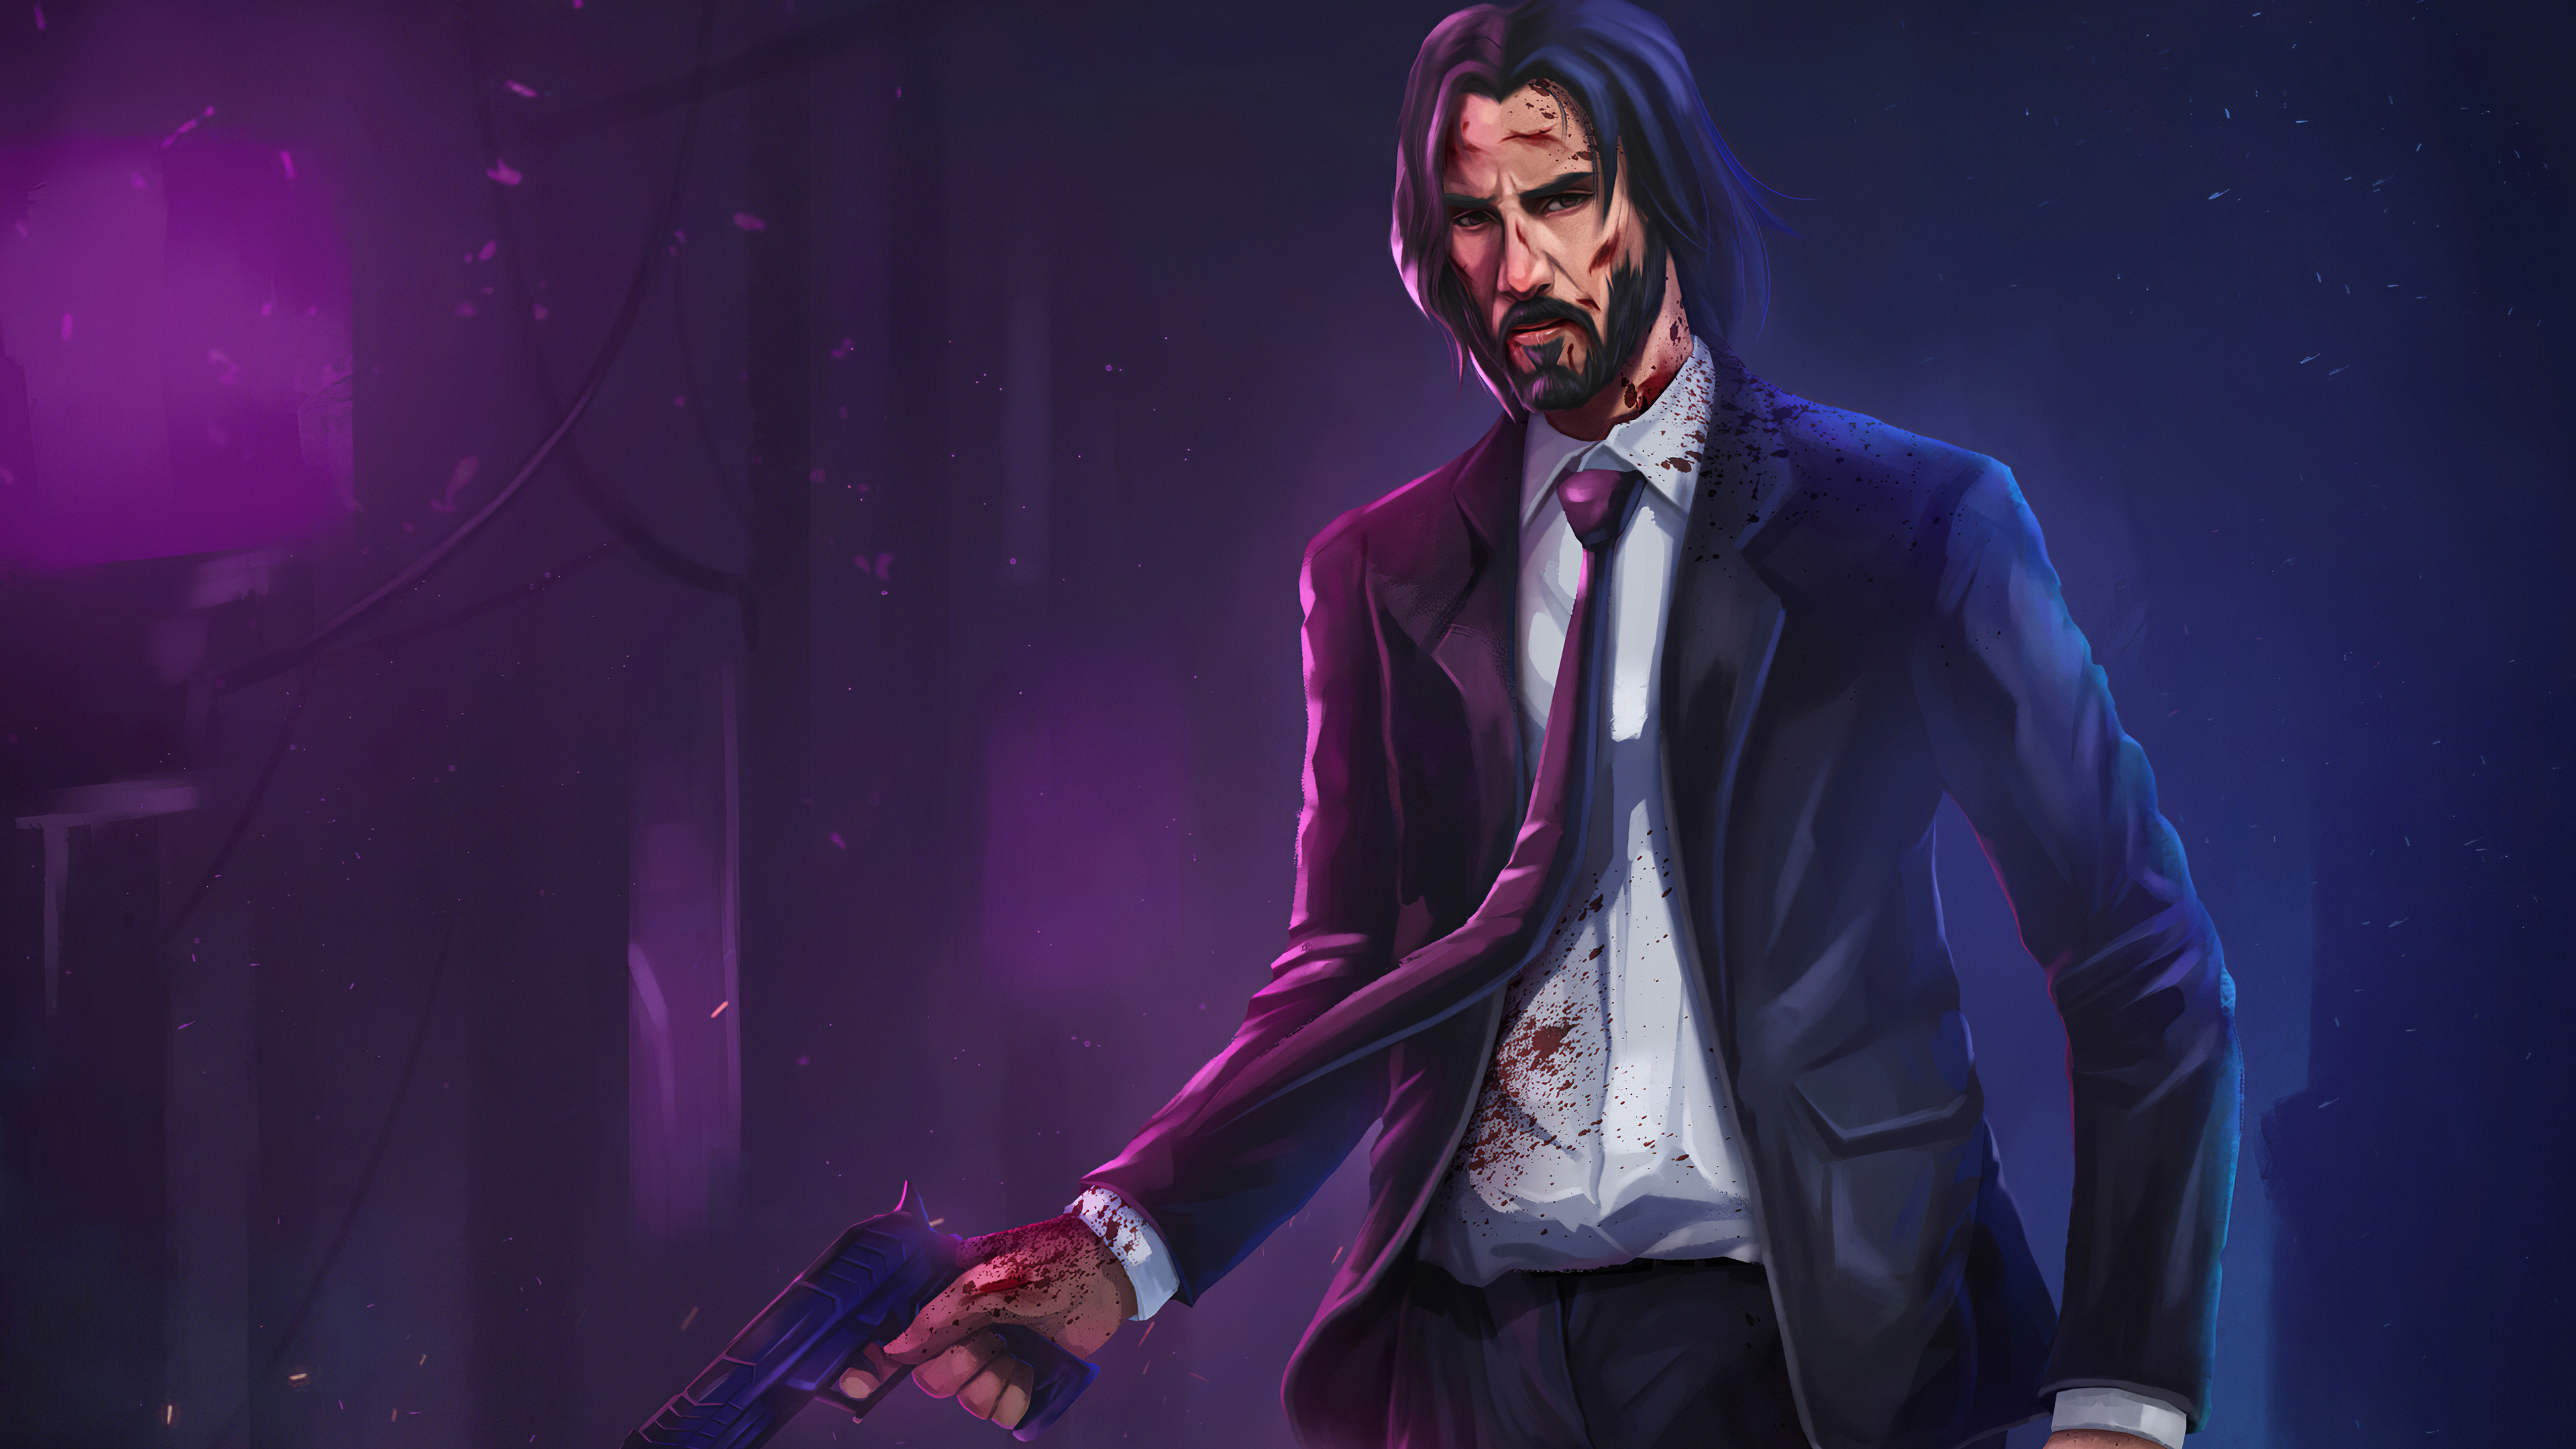 John Wick 4k Hd Movies 4k Wallpapers Images Backgrounds Photos And Pictures